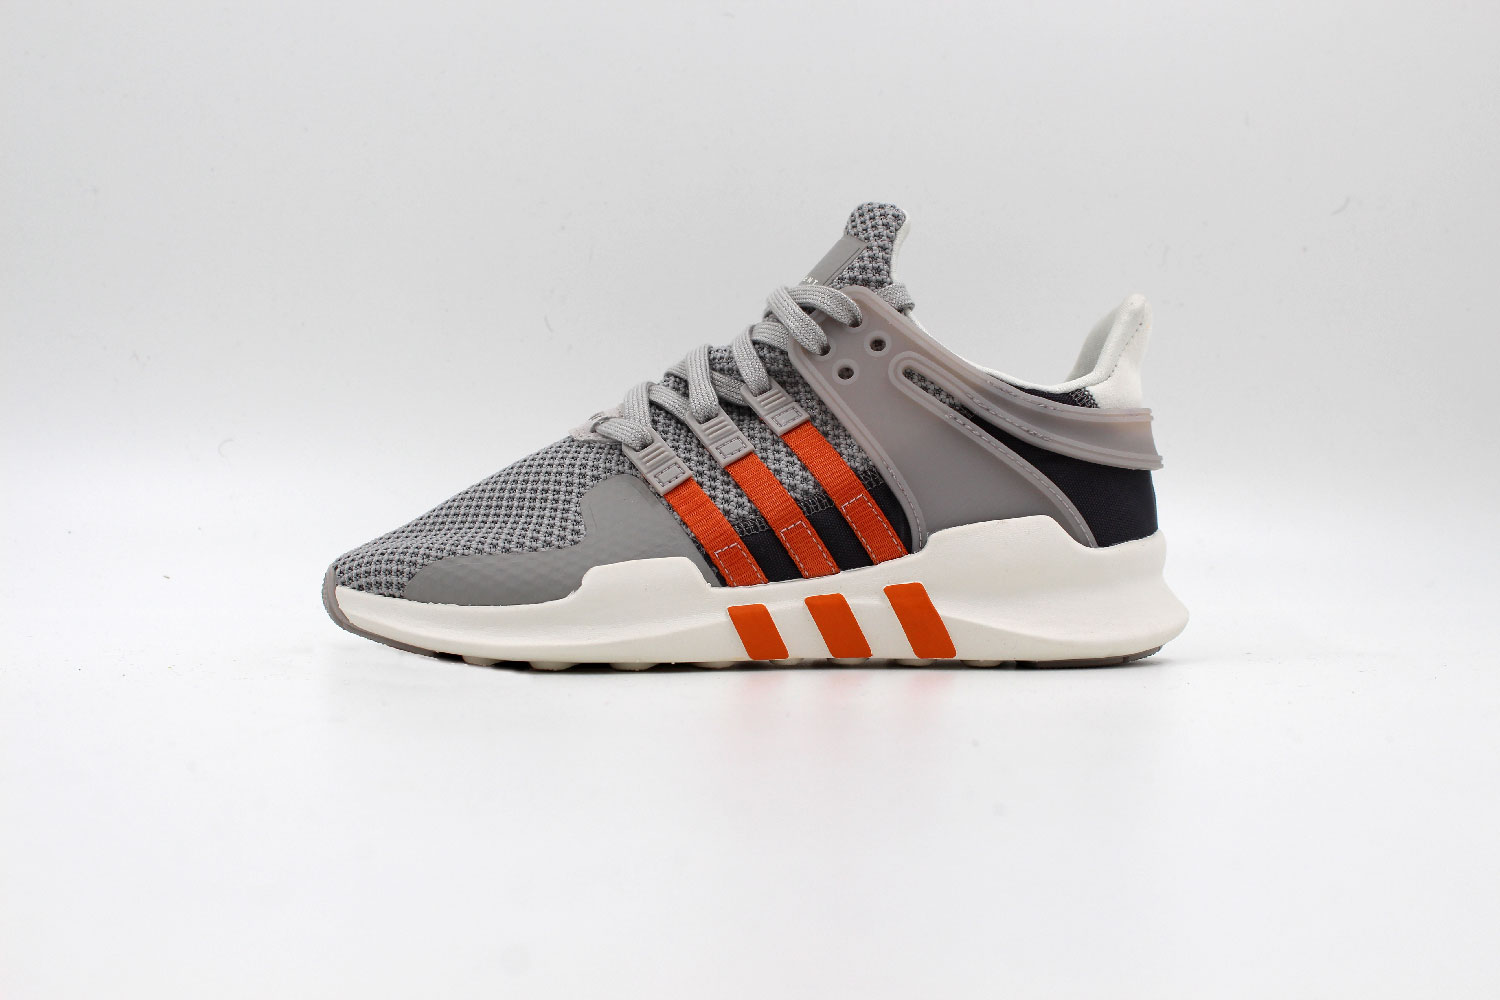 Adidas EQT adv 91/16 Turbo Red & Clear Onix White Review and On